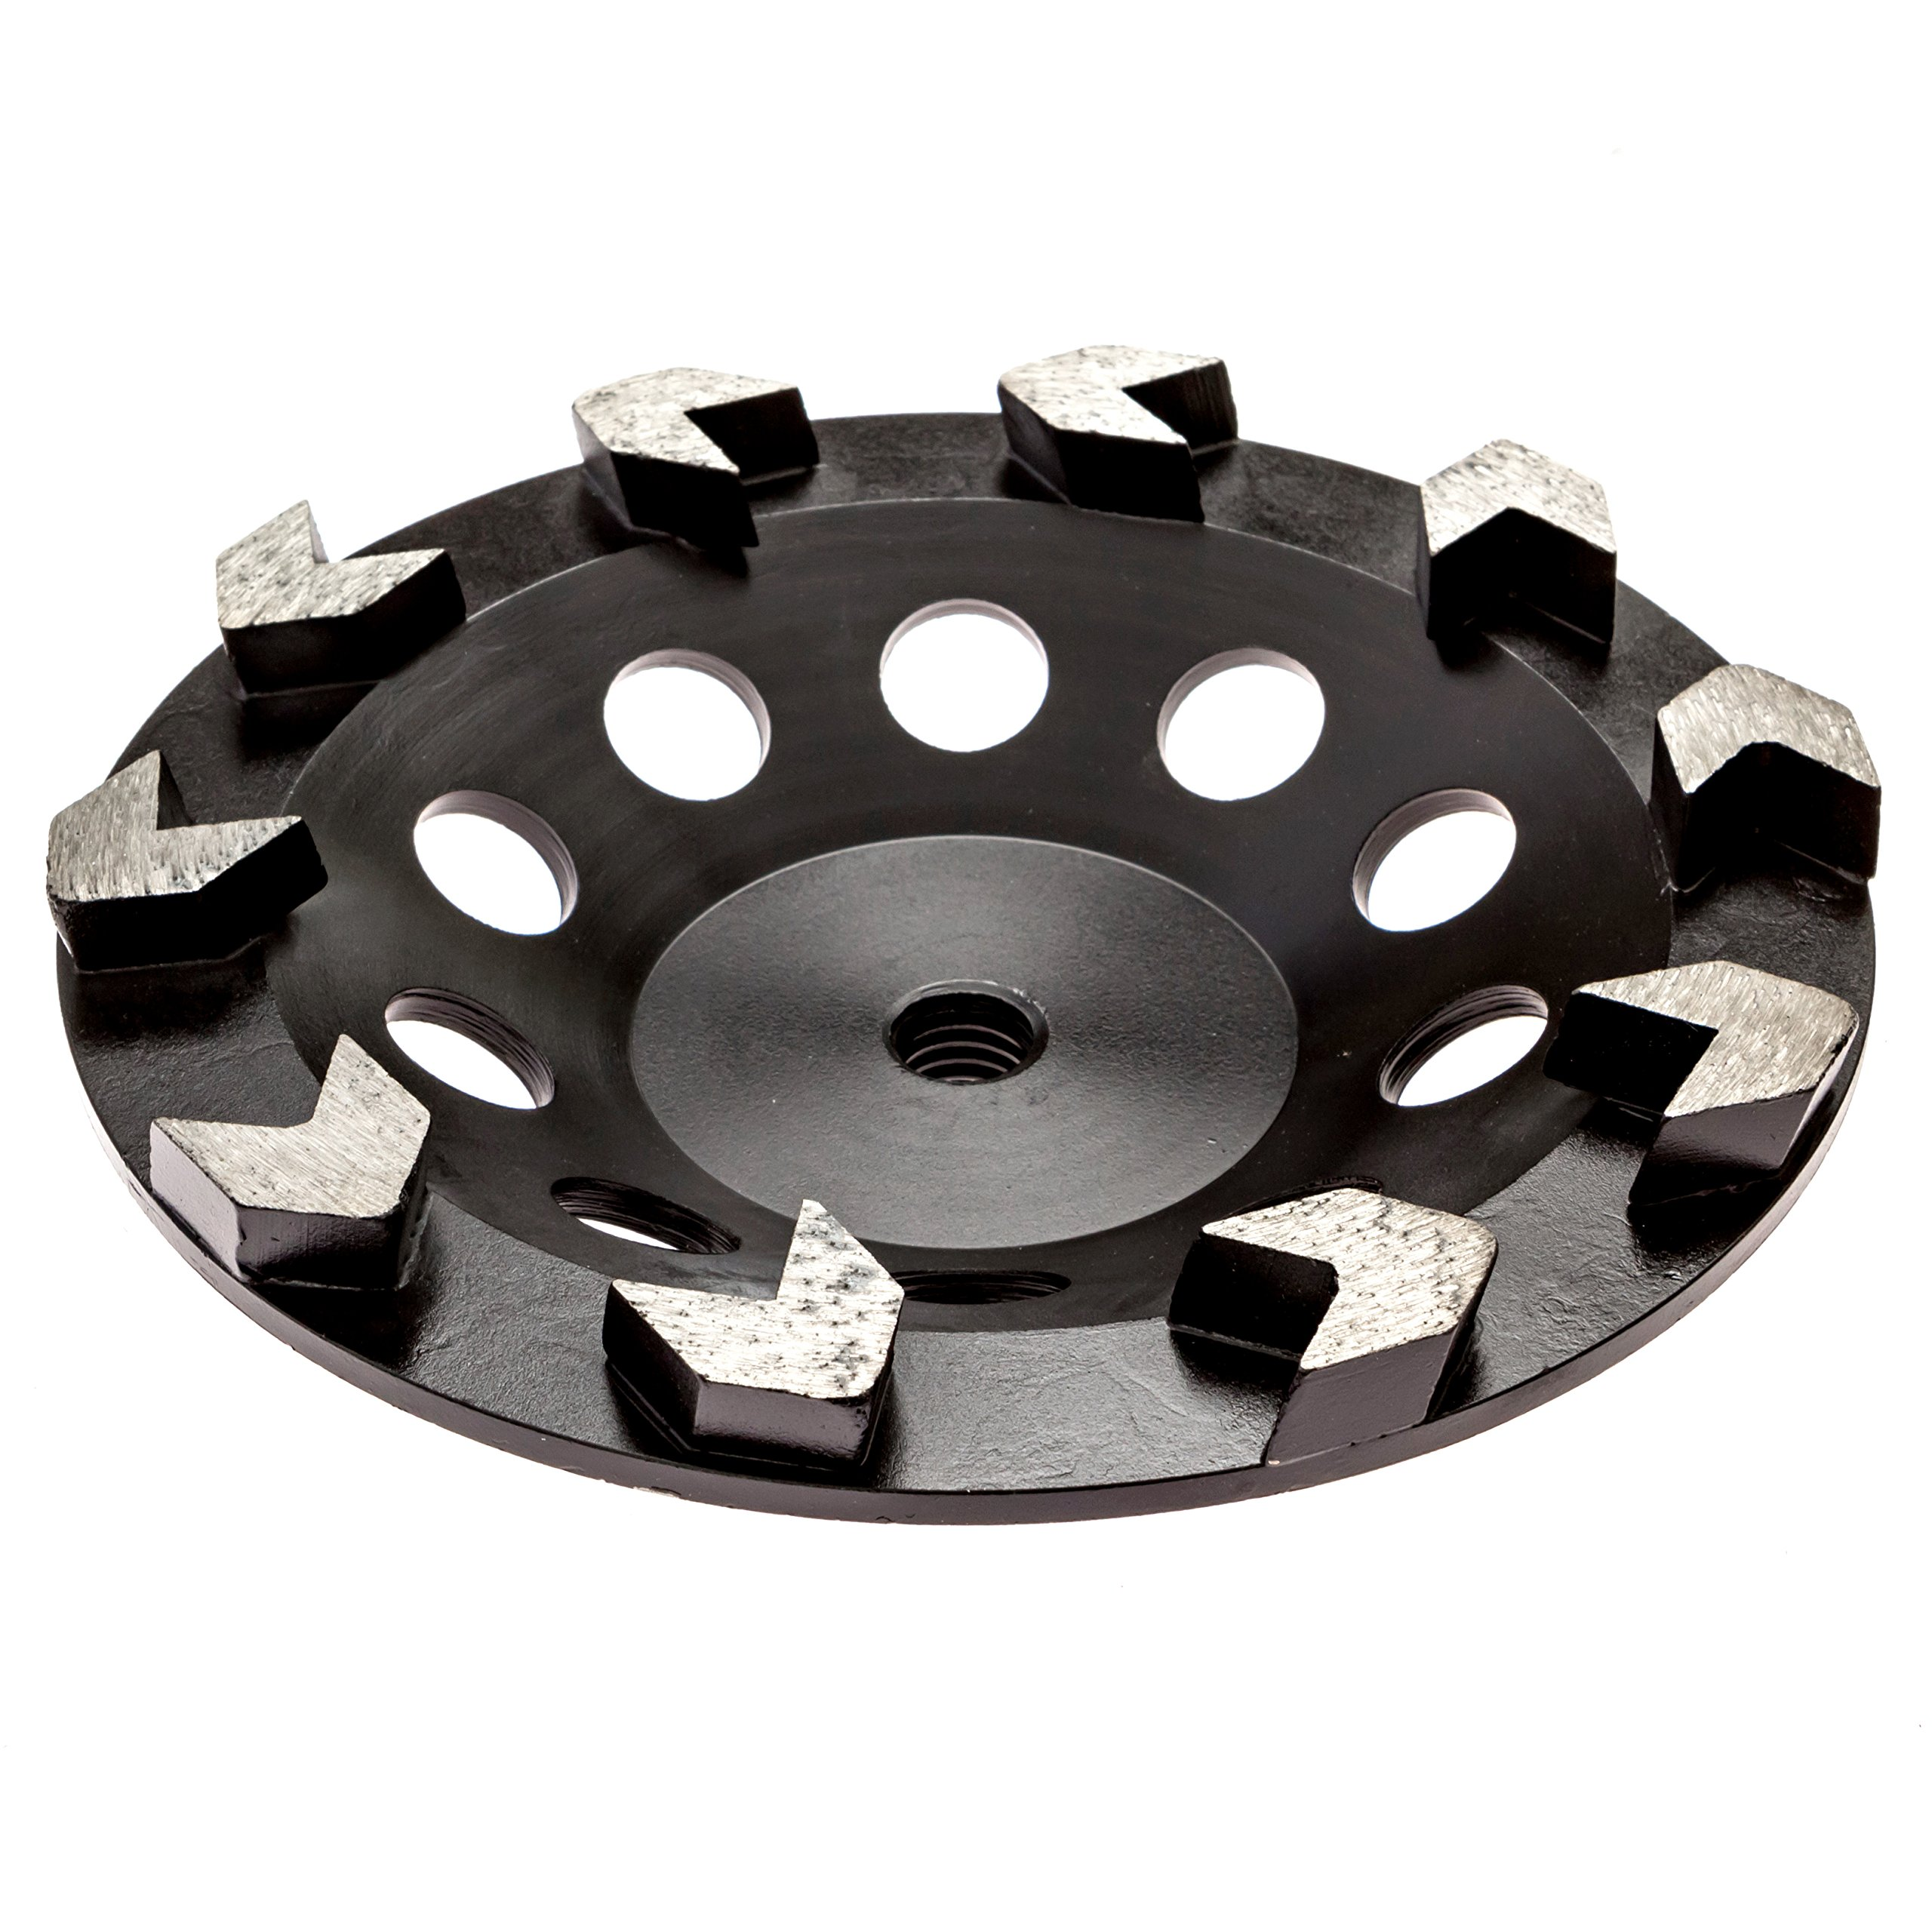 THINSET REMOVAL BIT, 7-in ARROW DIAMOND Grinding Cup!!!